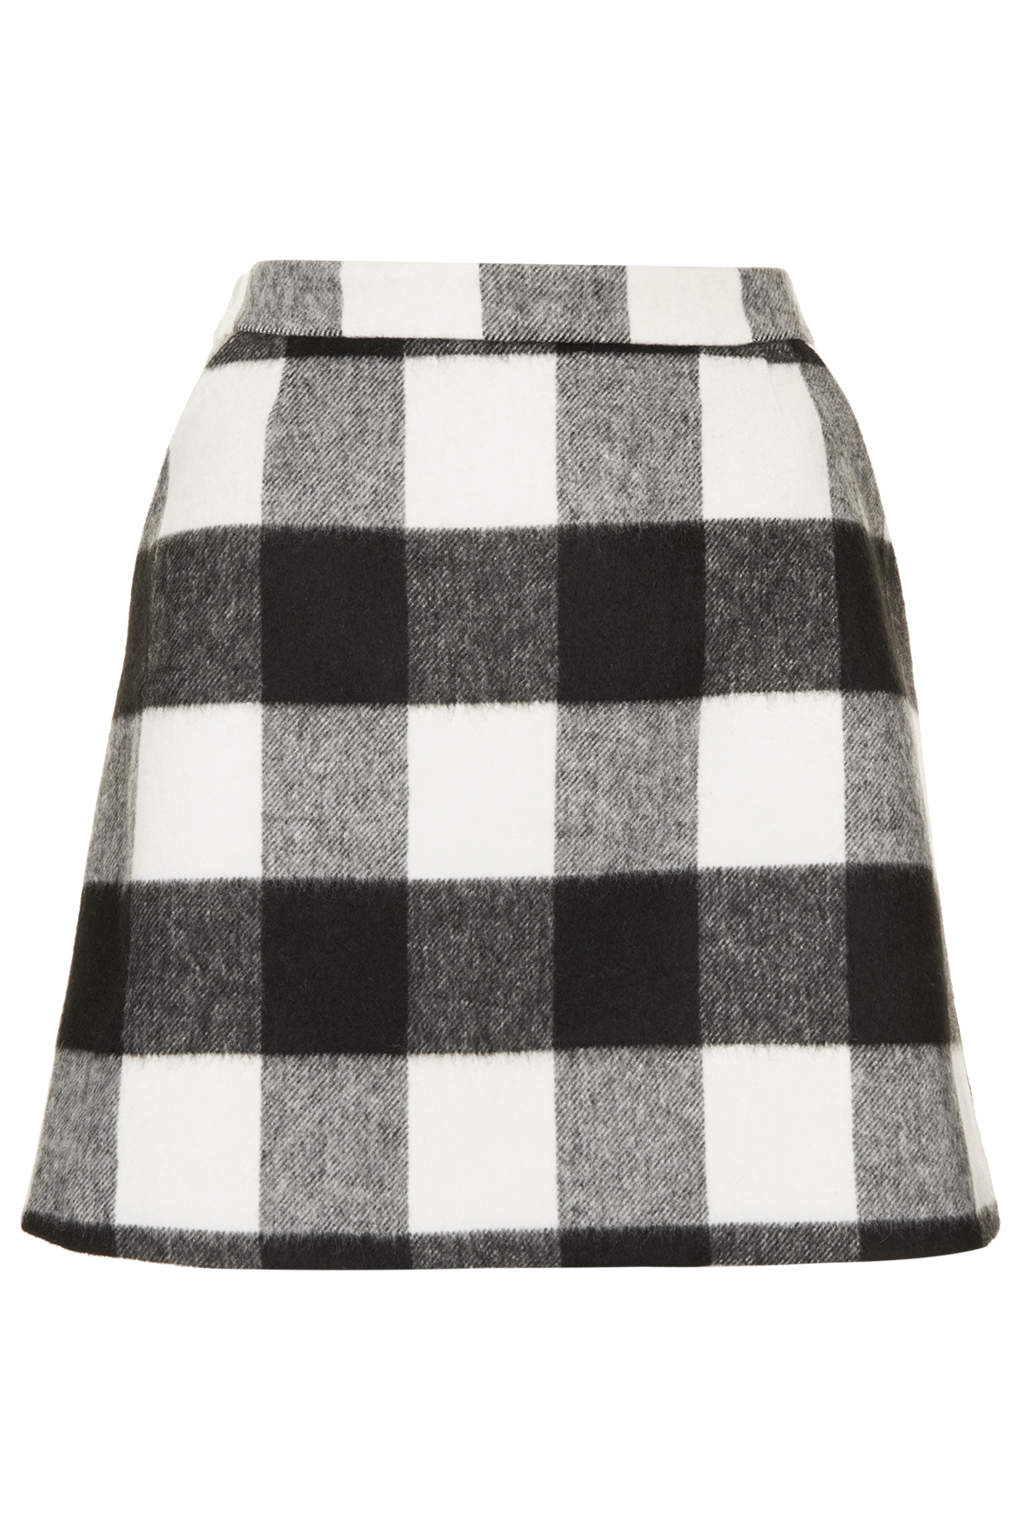 Topshop Brush Gingham Aline Skirt in Black | Lyst